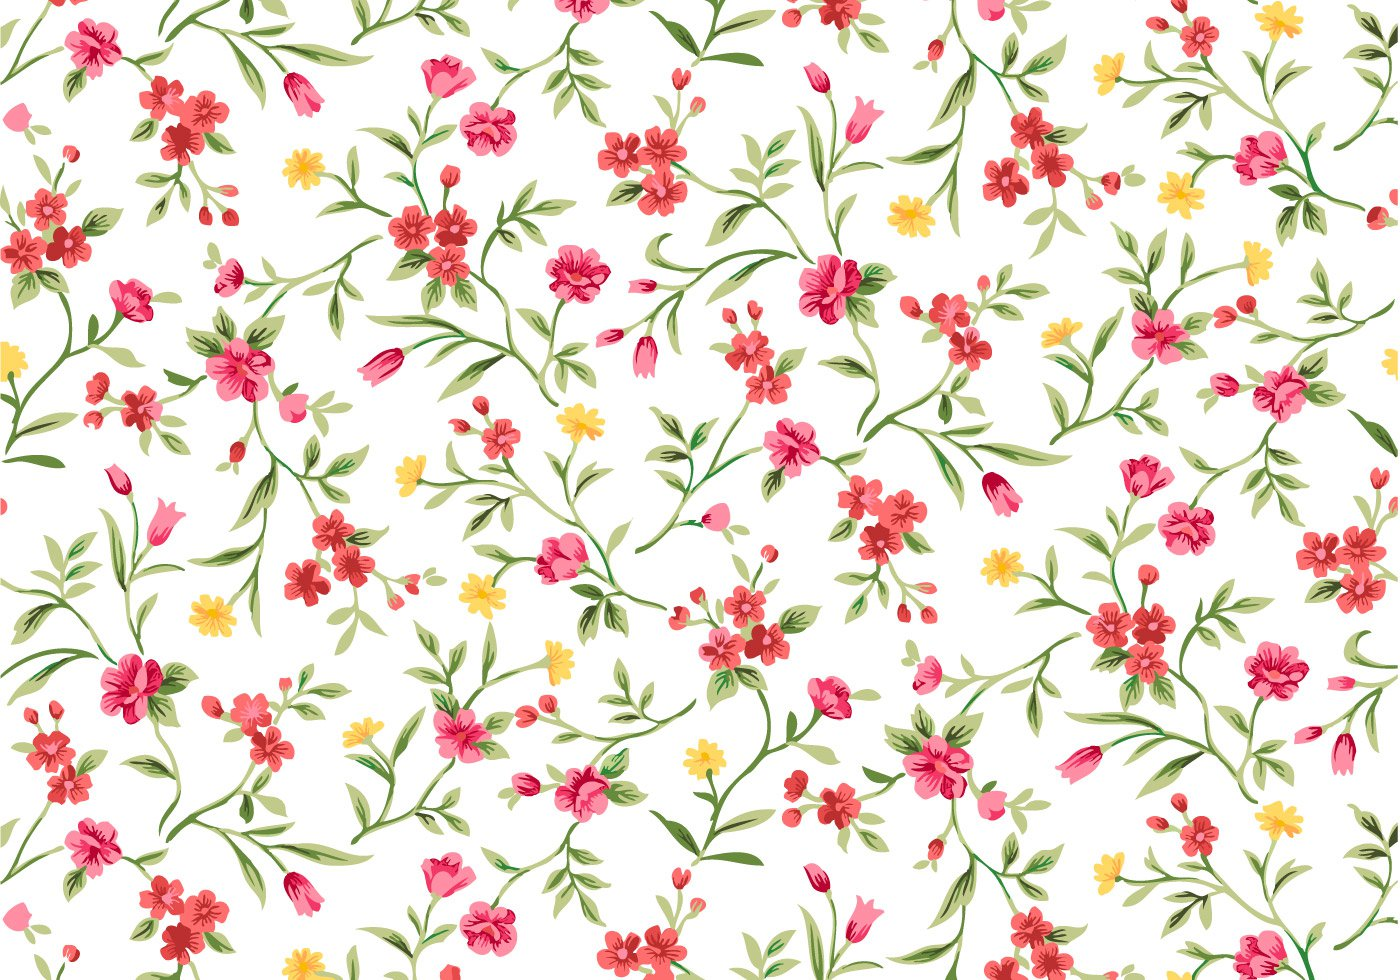 12 Graphic Watercolor Floral Images - Watercolor Flowers ...